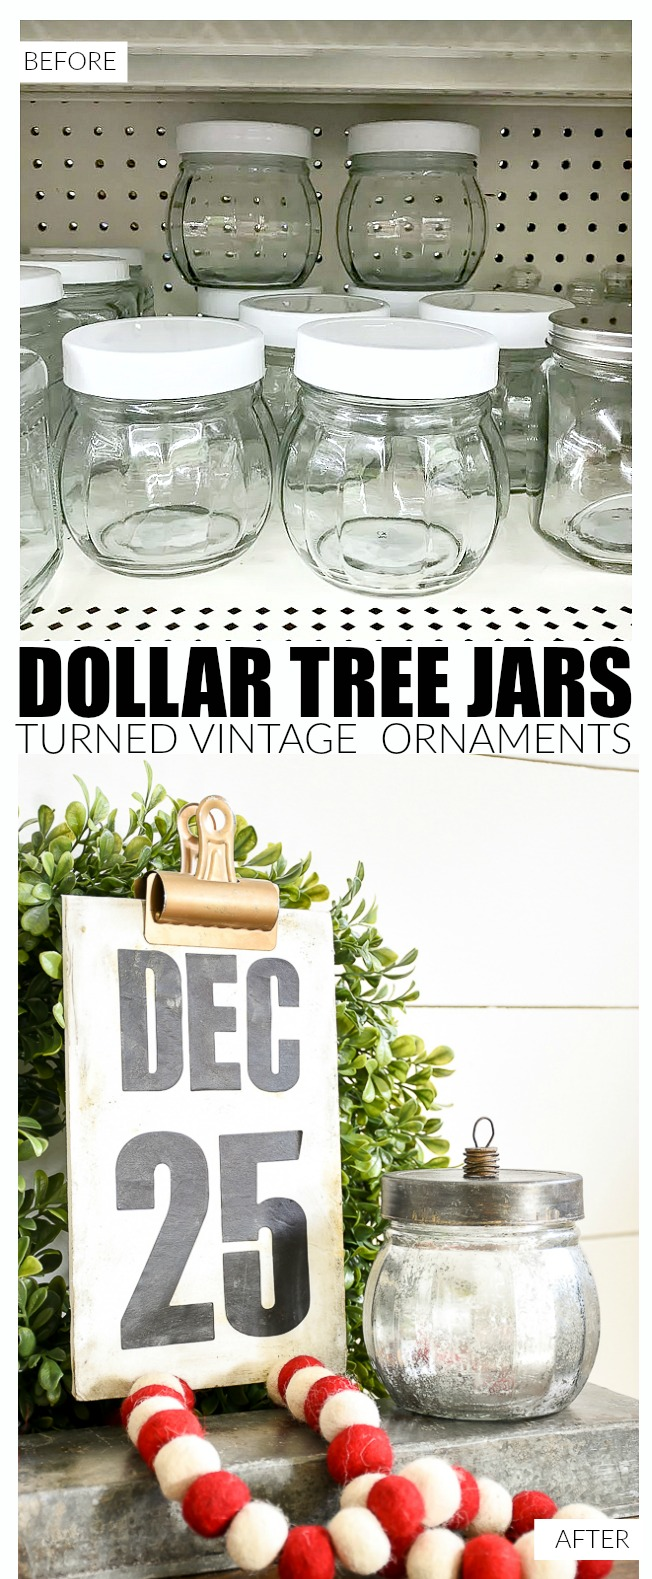 DIY Mercury glass, vintage ornaments, dollar tree DIY, Dollar Tree, christmas, ornaments